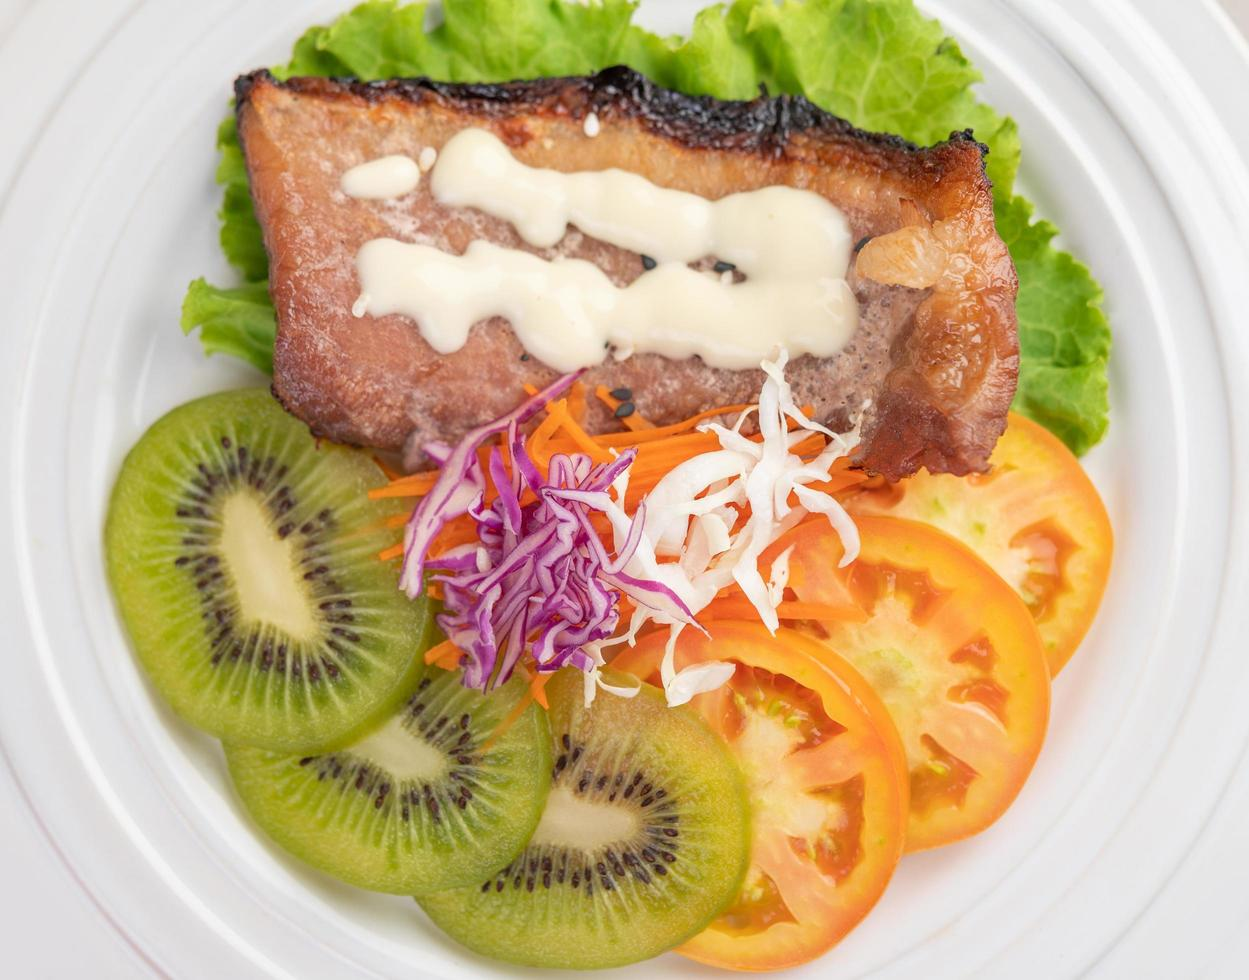 Fish steak with french fries, fruit and vegetables photo